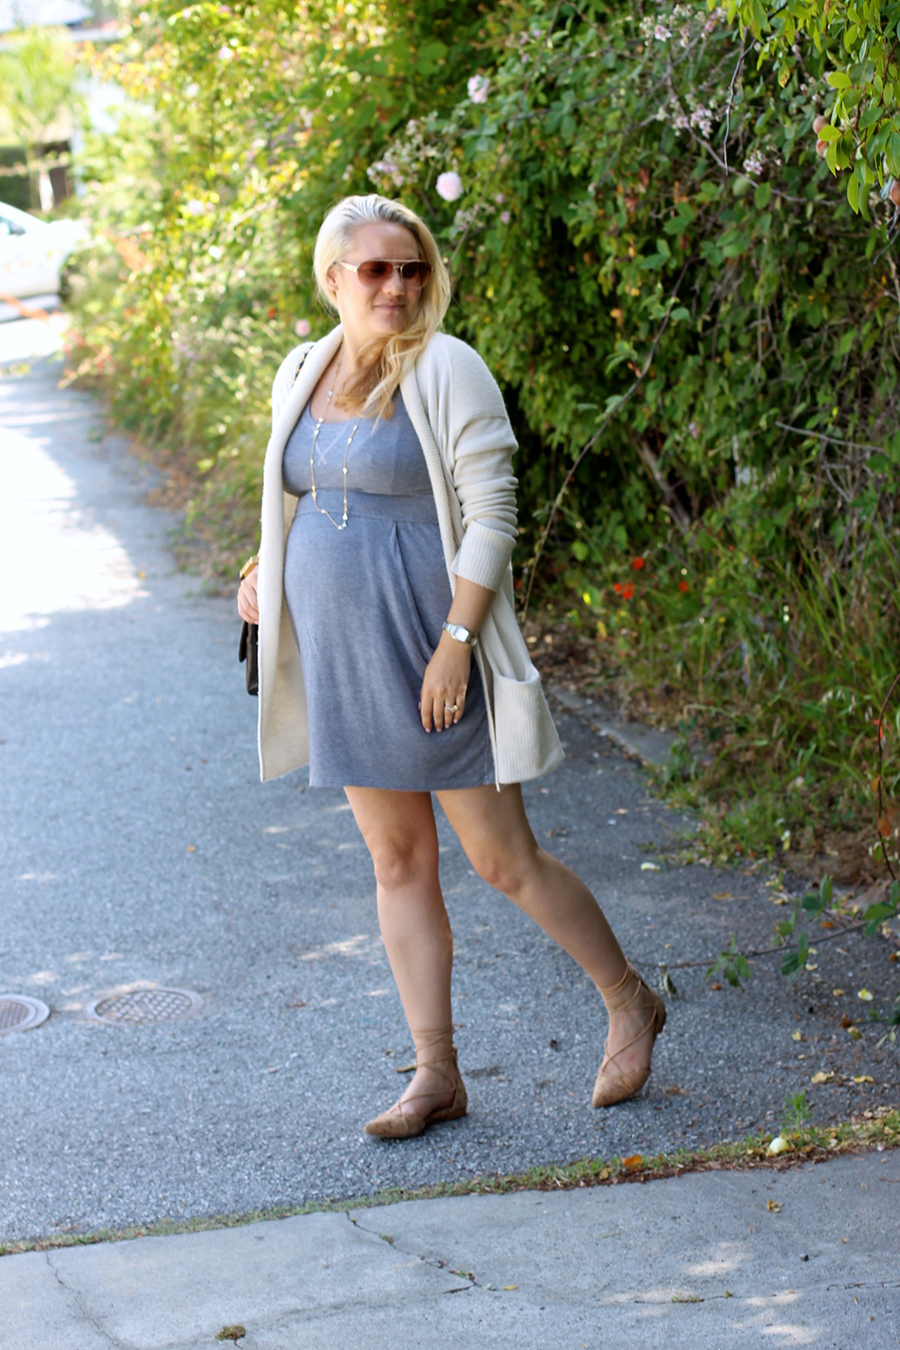 Grey Jersey Mini Dress-Maternity Style-Outfit Inspiration-Pregnancy Style-Have Need Want 12